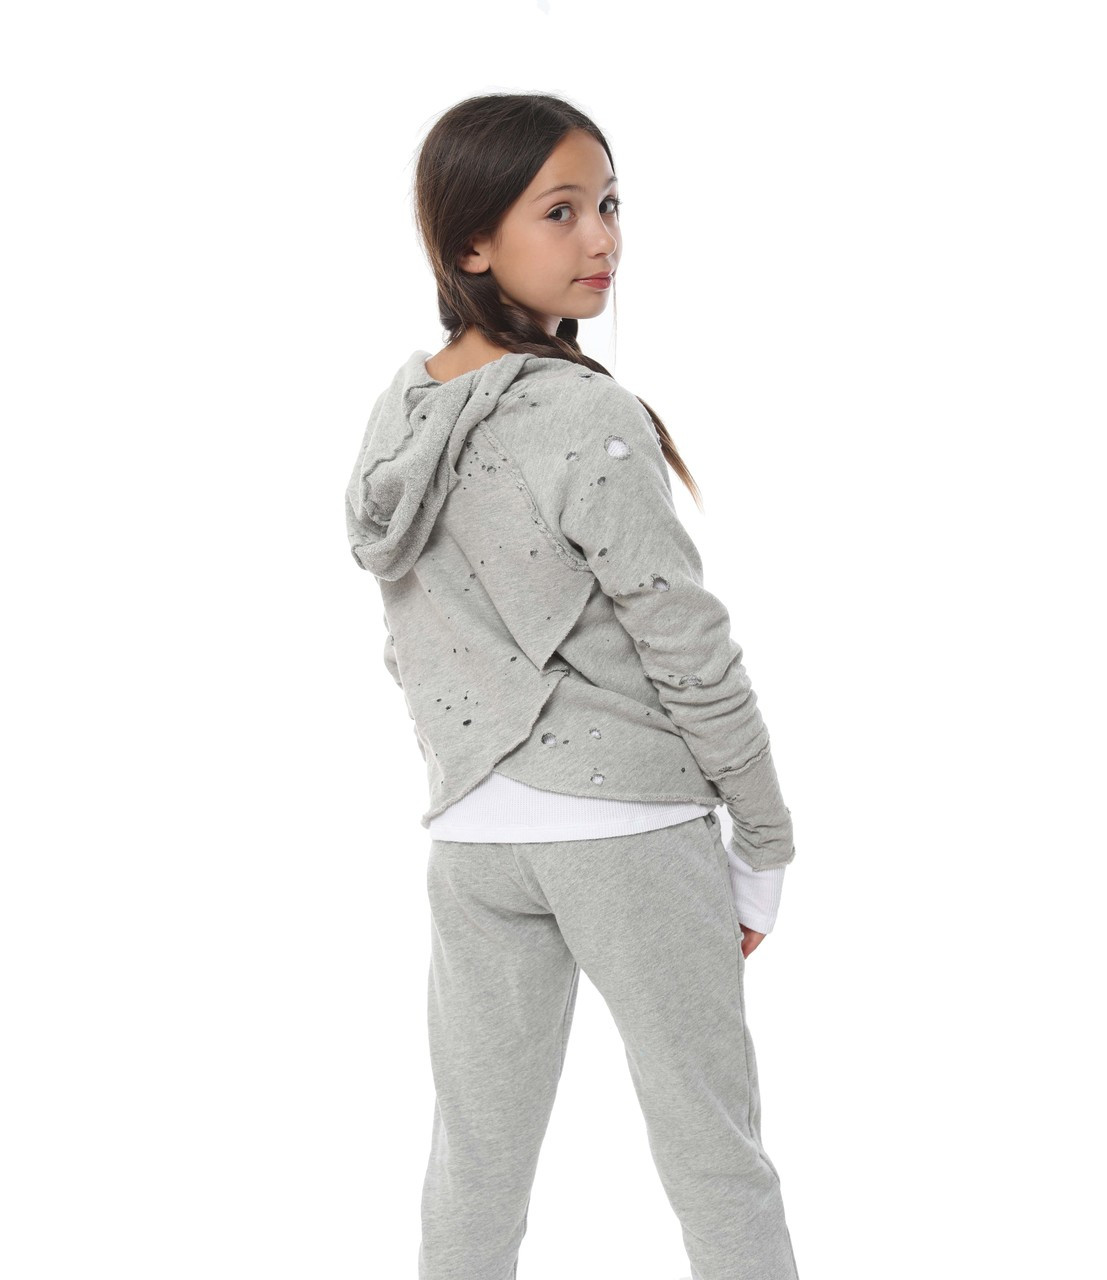 bd86a134613fc ... GREY HEATHER FLEECE COTTON SWEAT PANTS WITH DISTRESSED POCKETS